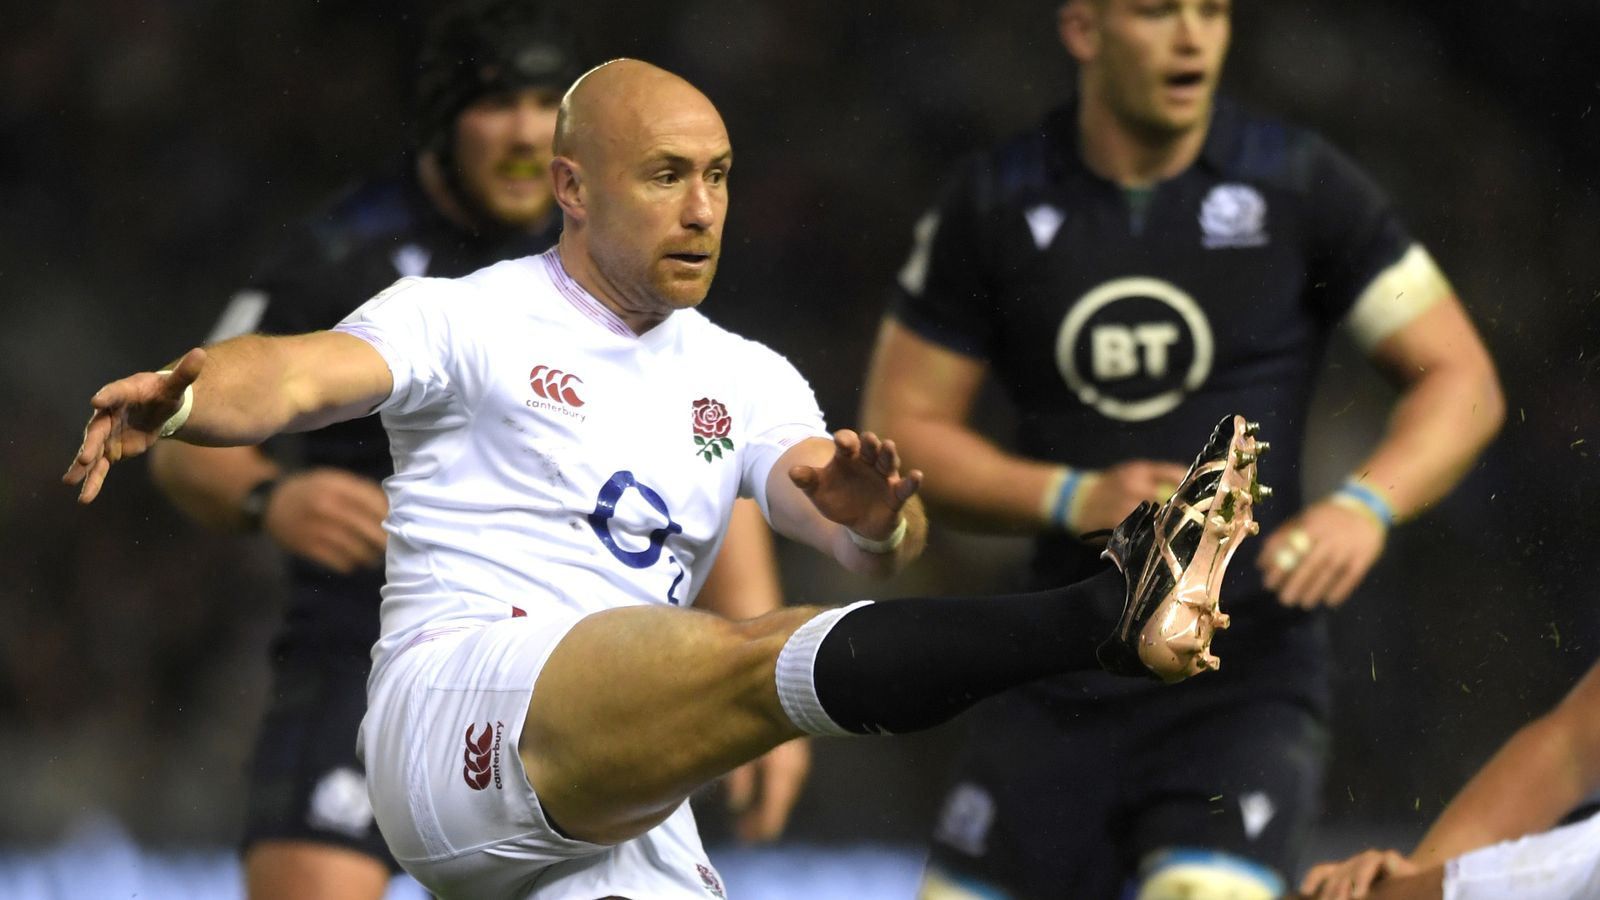 Willi Heinz ruled out of England's Six Nations decider against Italy